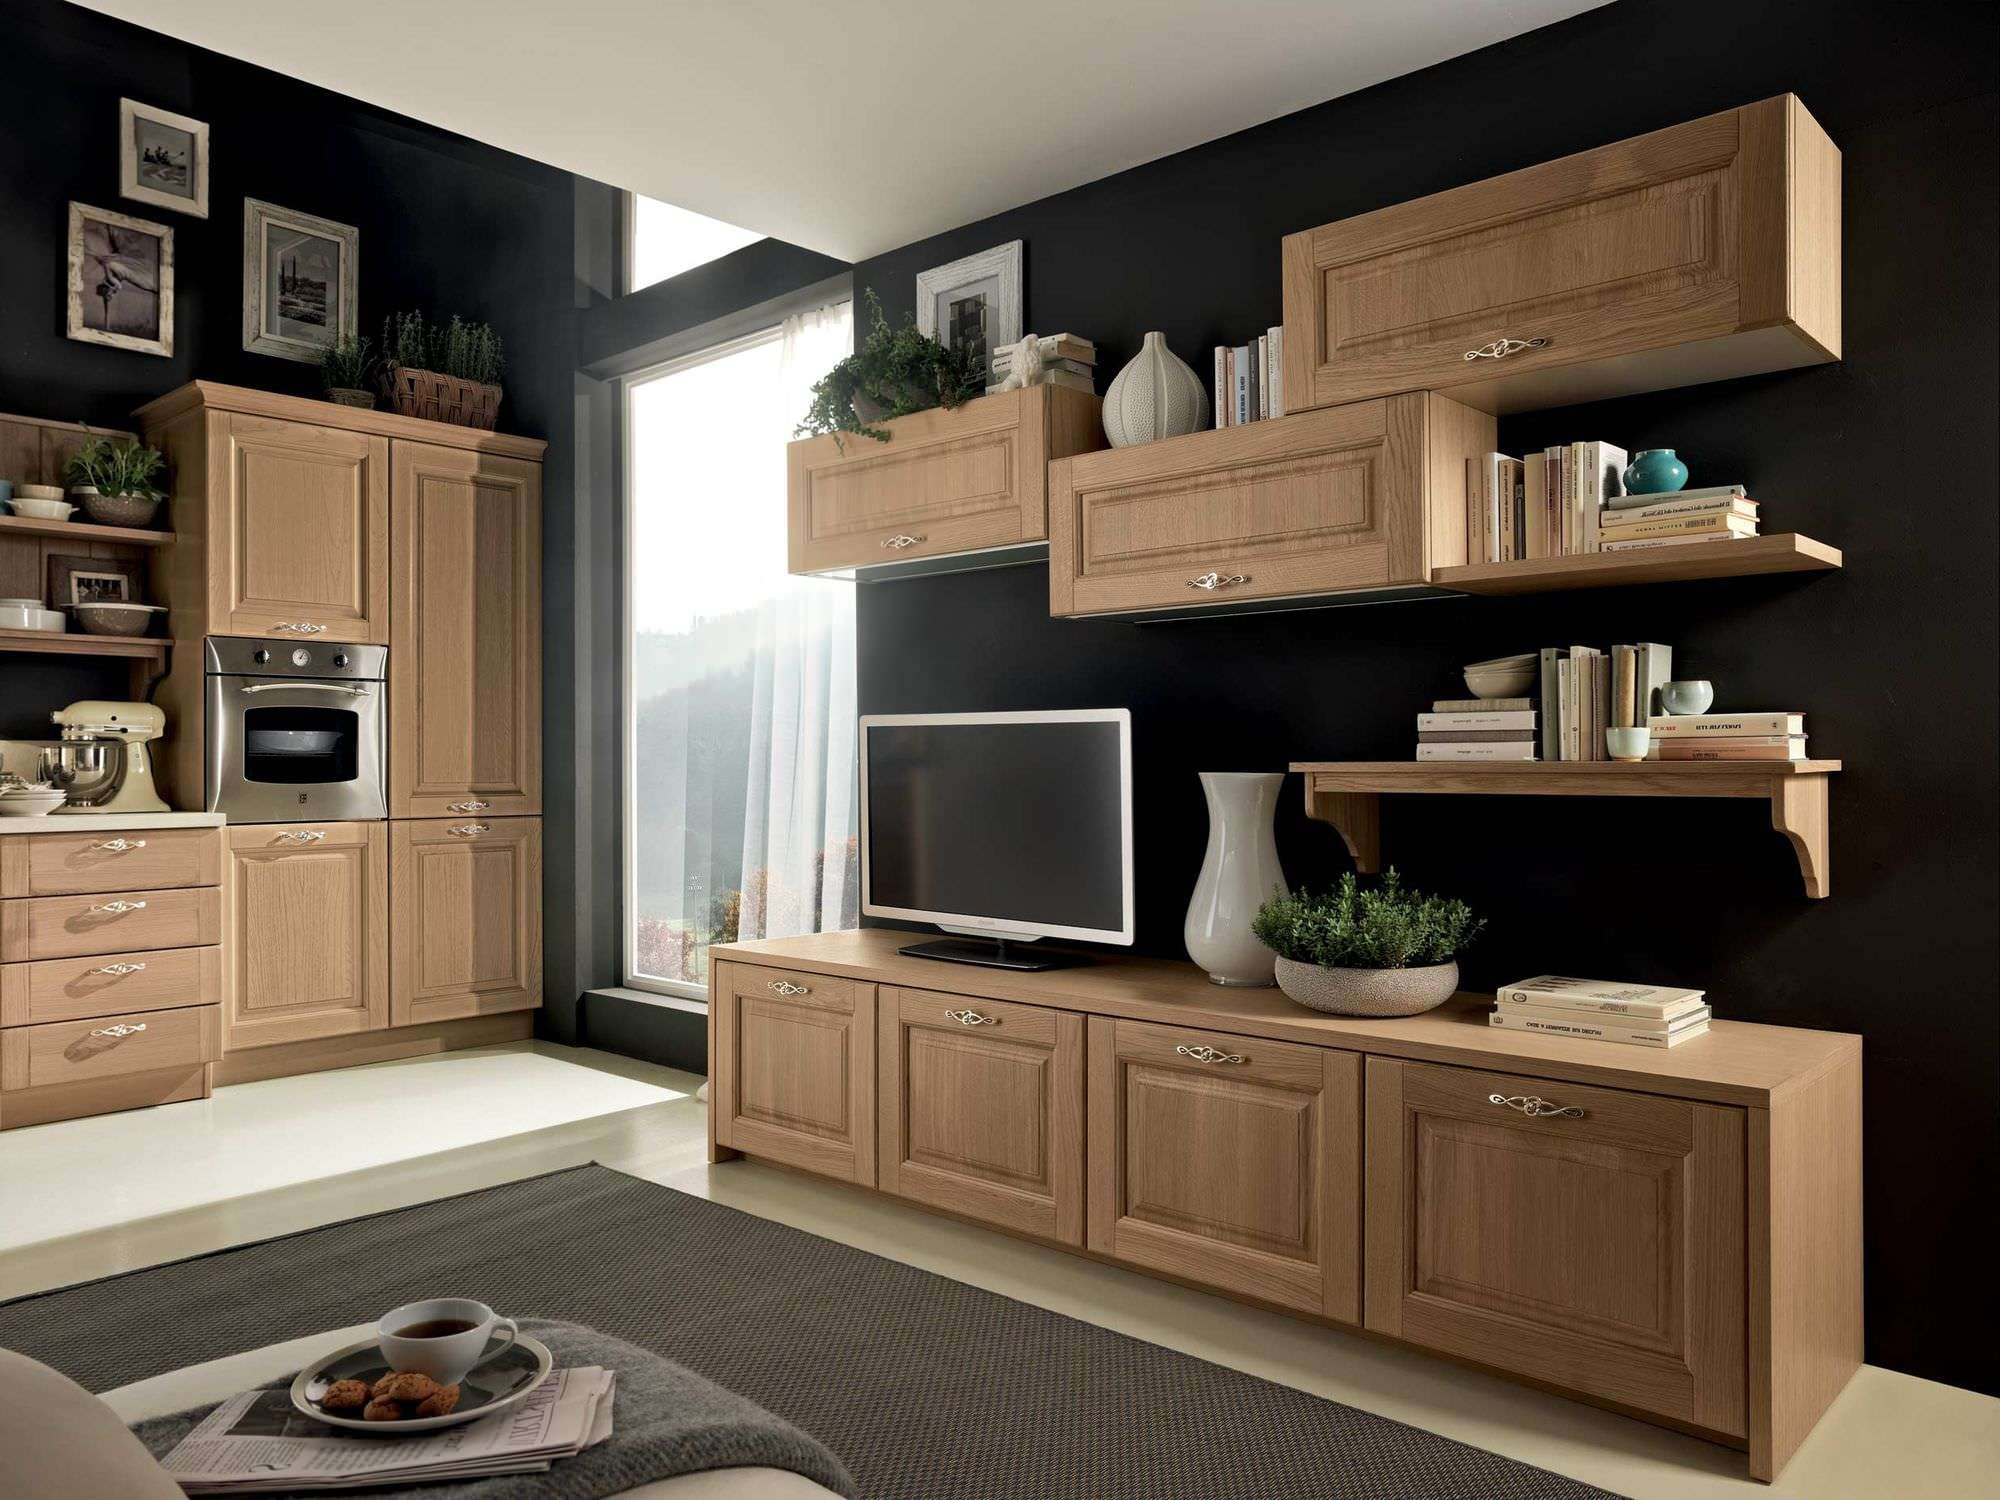 Traditional Tv Cabinet / Wooden – Bolgheri – Stosa Cucine For Traditional Tv Cabinets (View 5 of 20)